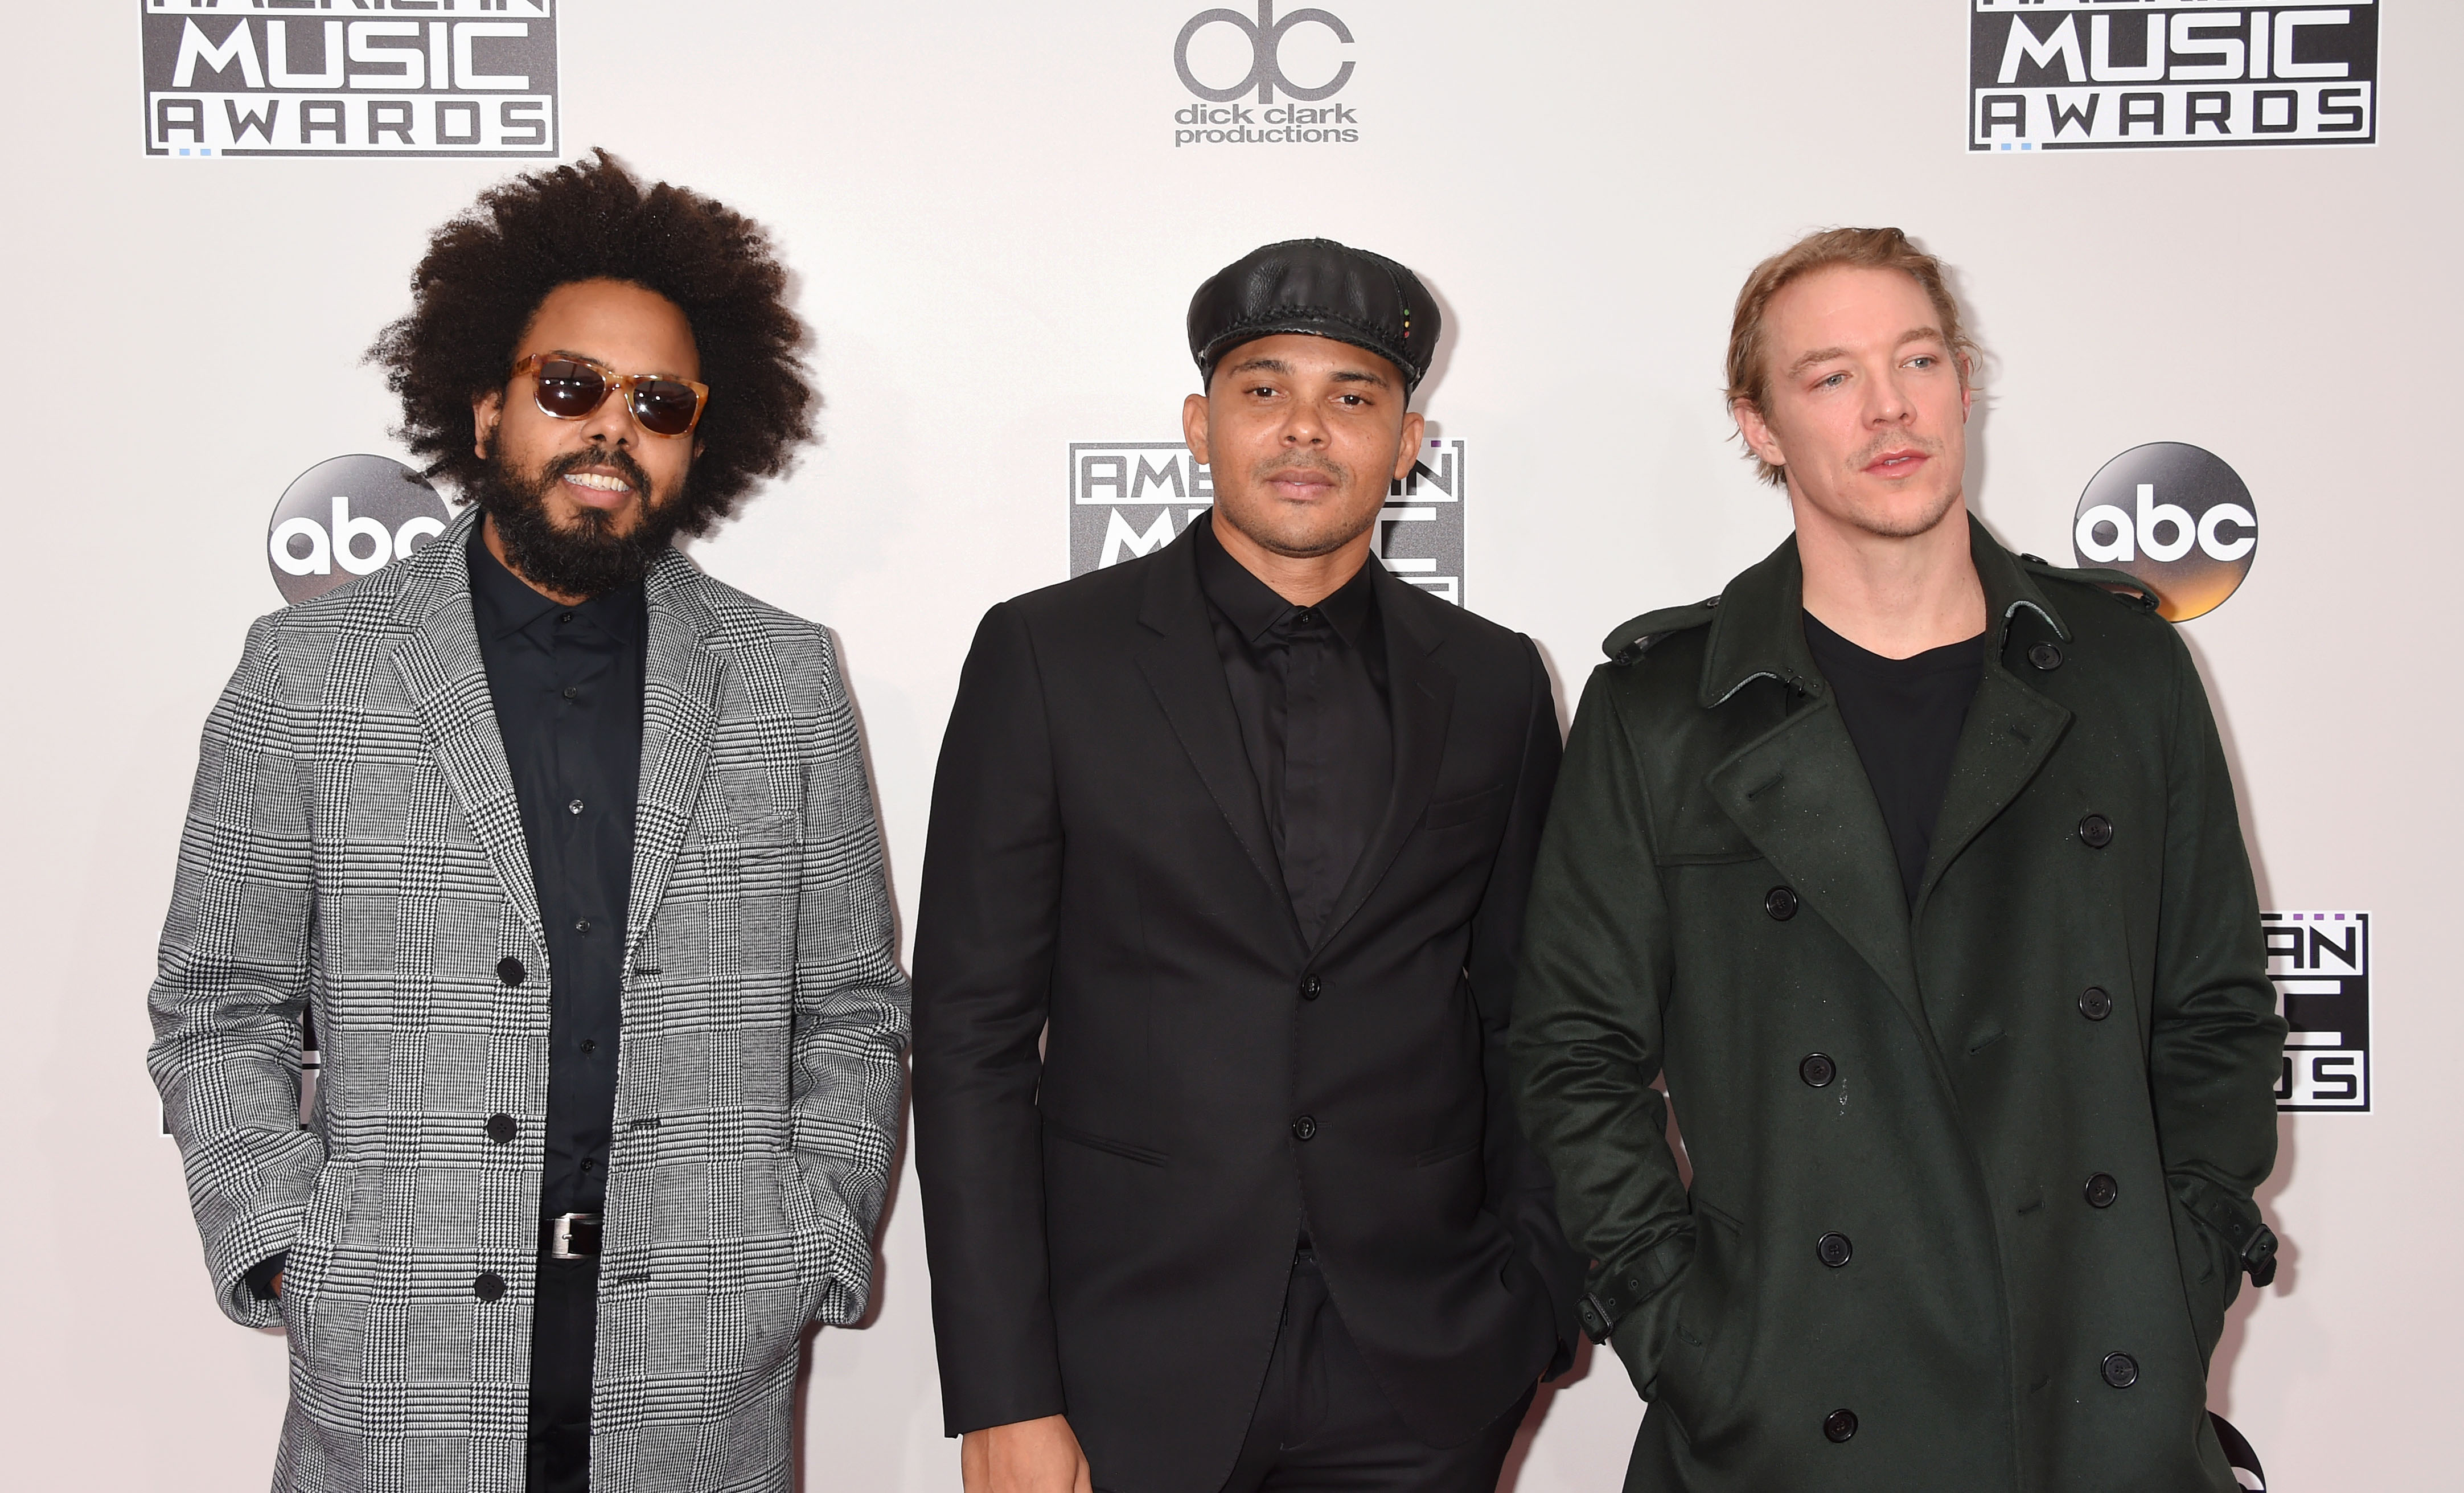 (L-R) Jillionaire, Walshy Fire and Diplo of Major Lazer arrive at the 2016 American Music Awards at Microsoft Theater on November 20, 2016 in Los Angeles, California.